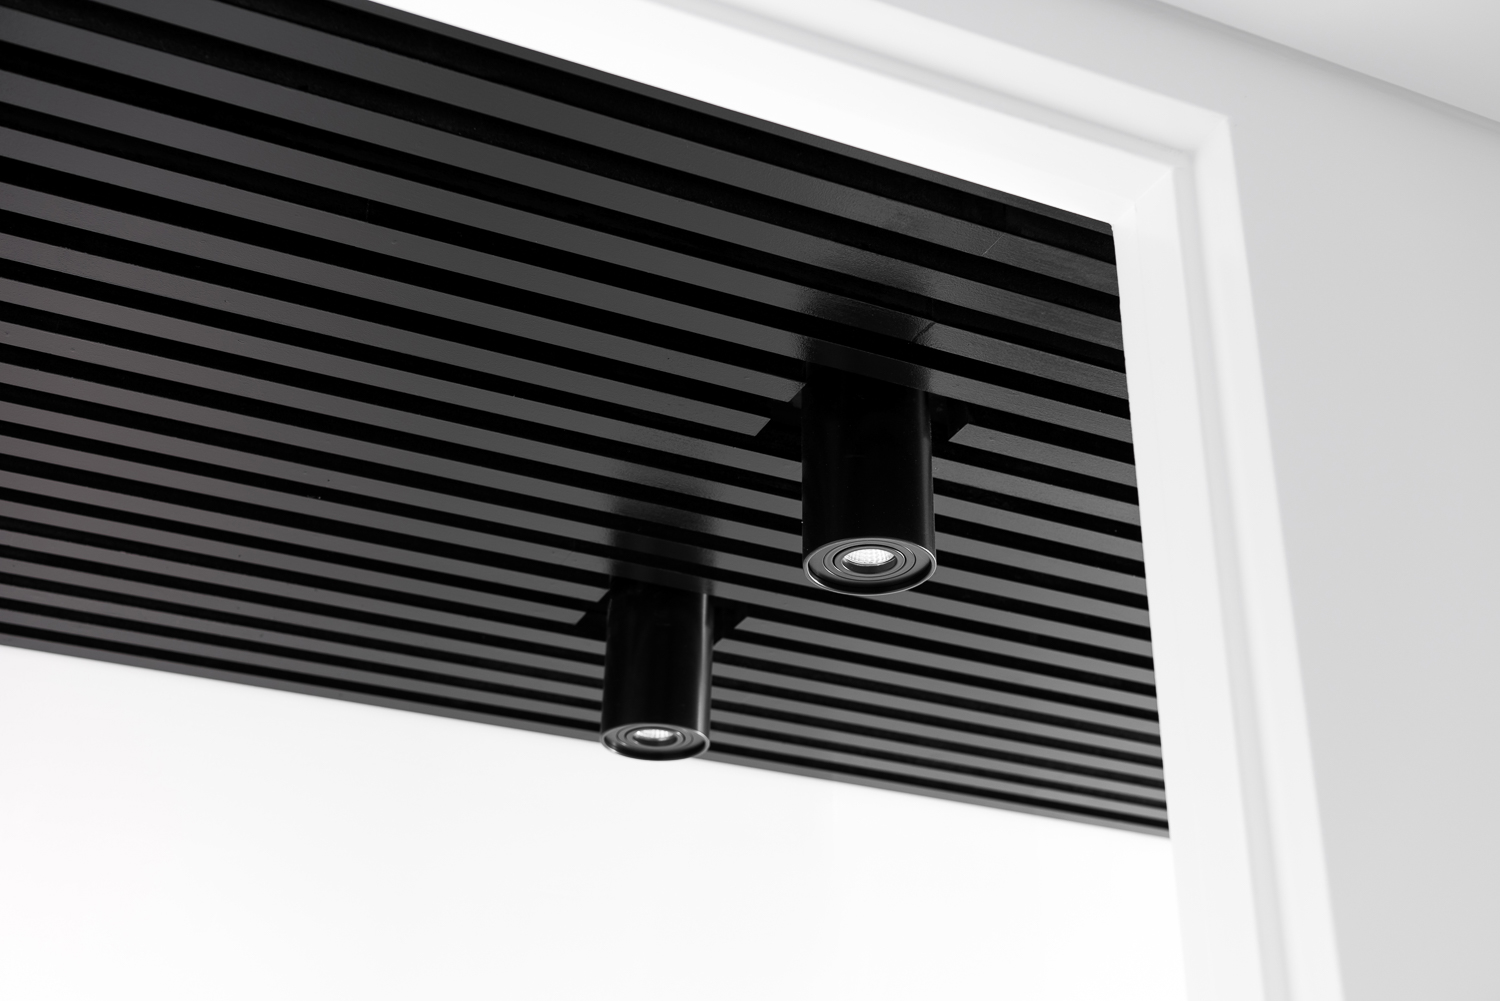 King George by Robeson Architects - Black Canister Light